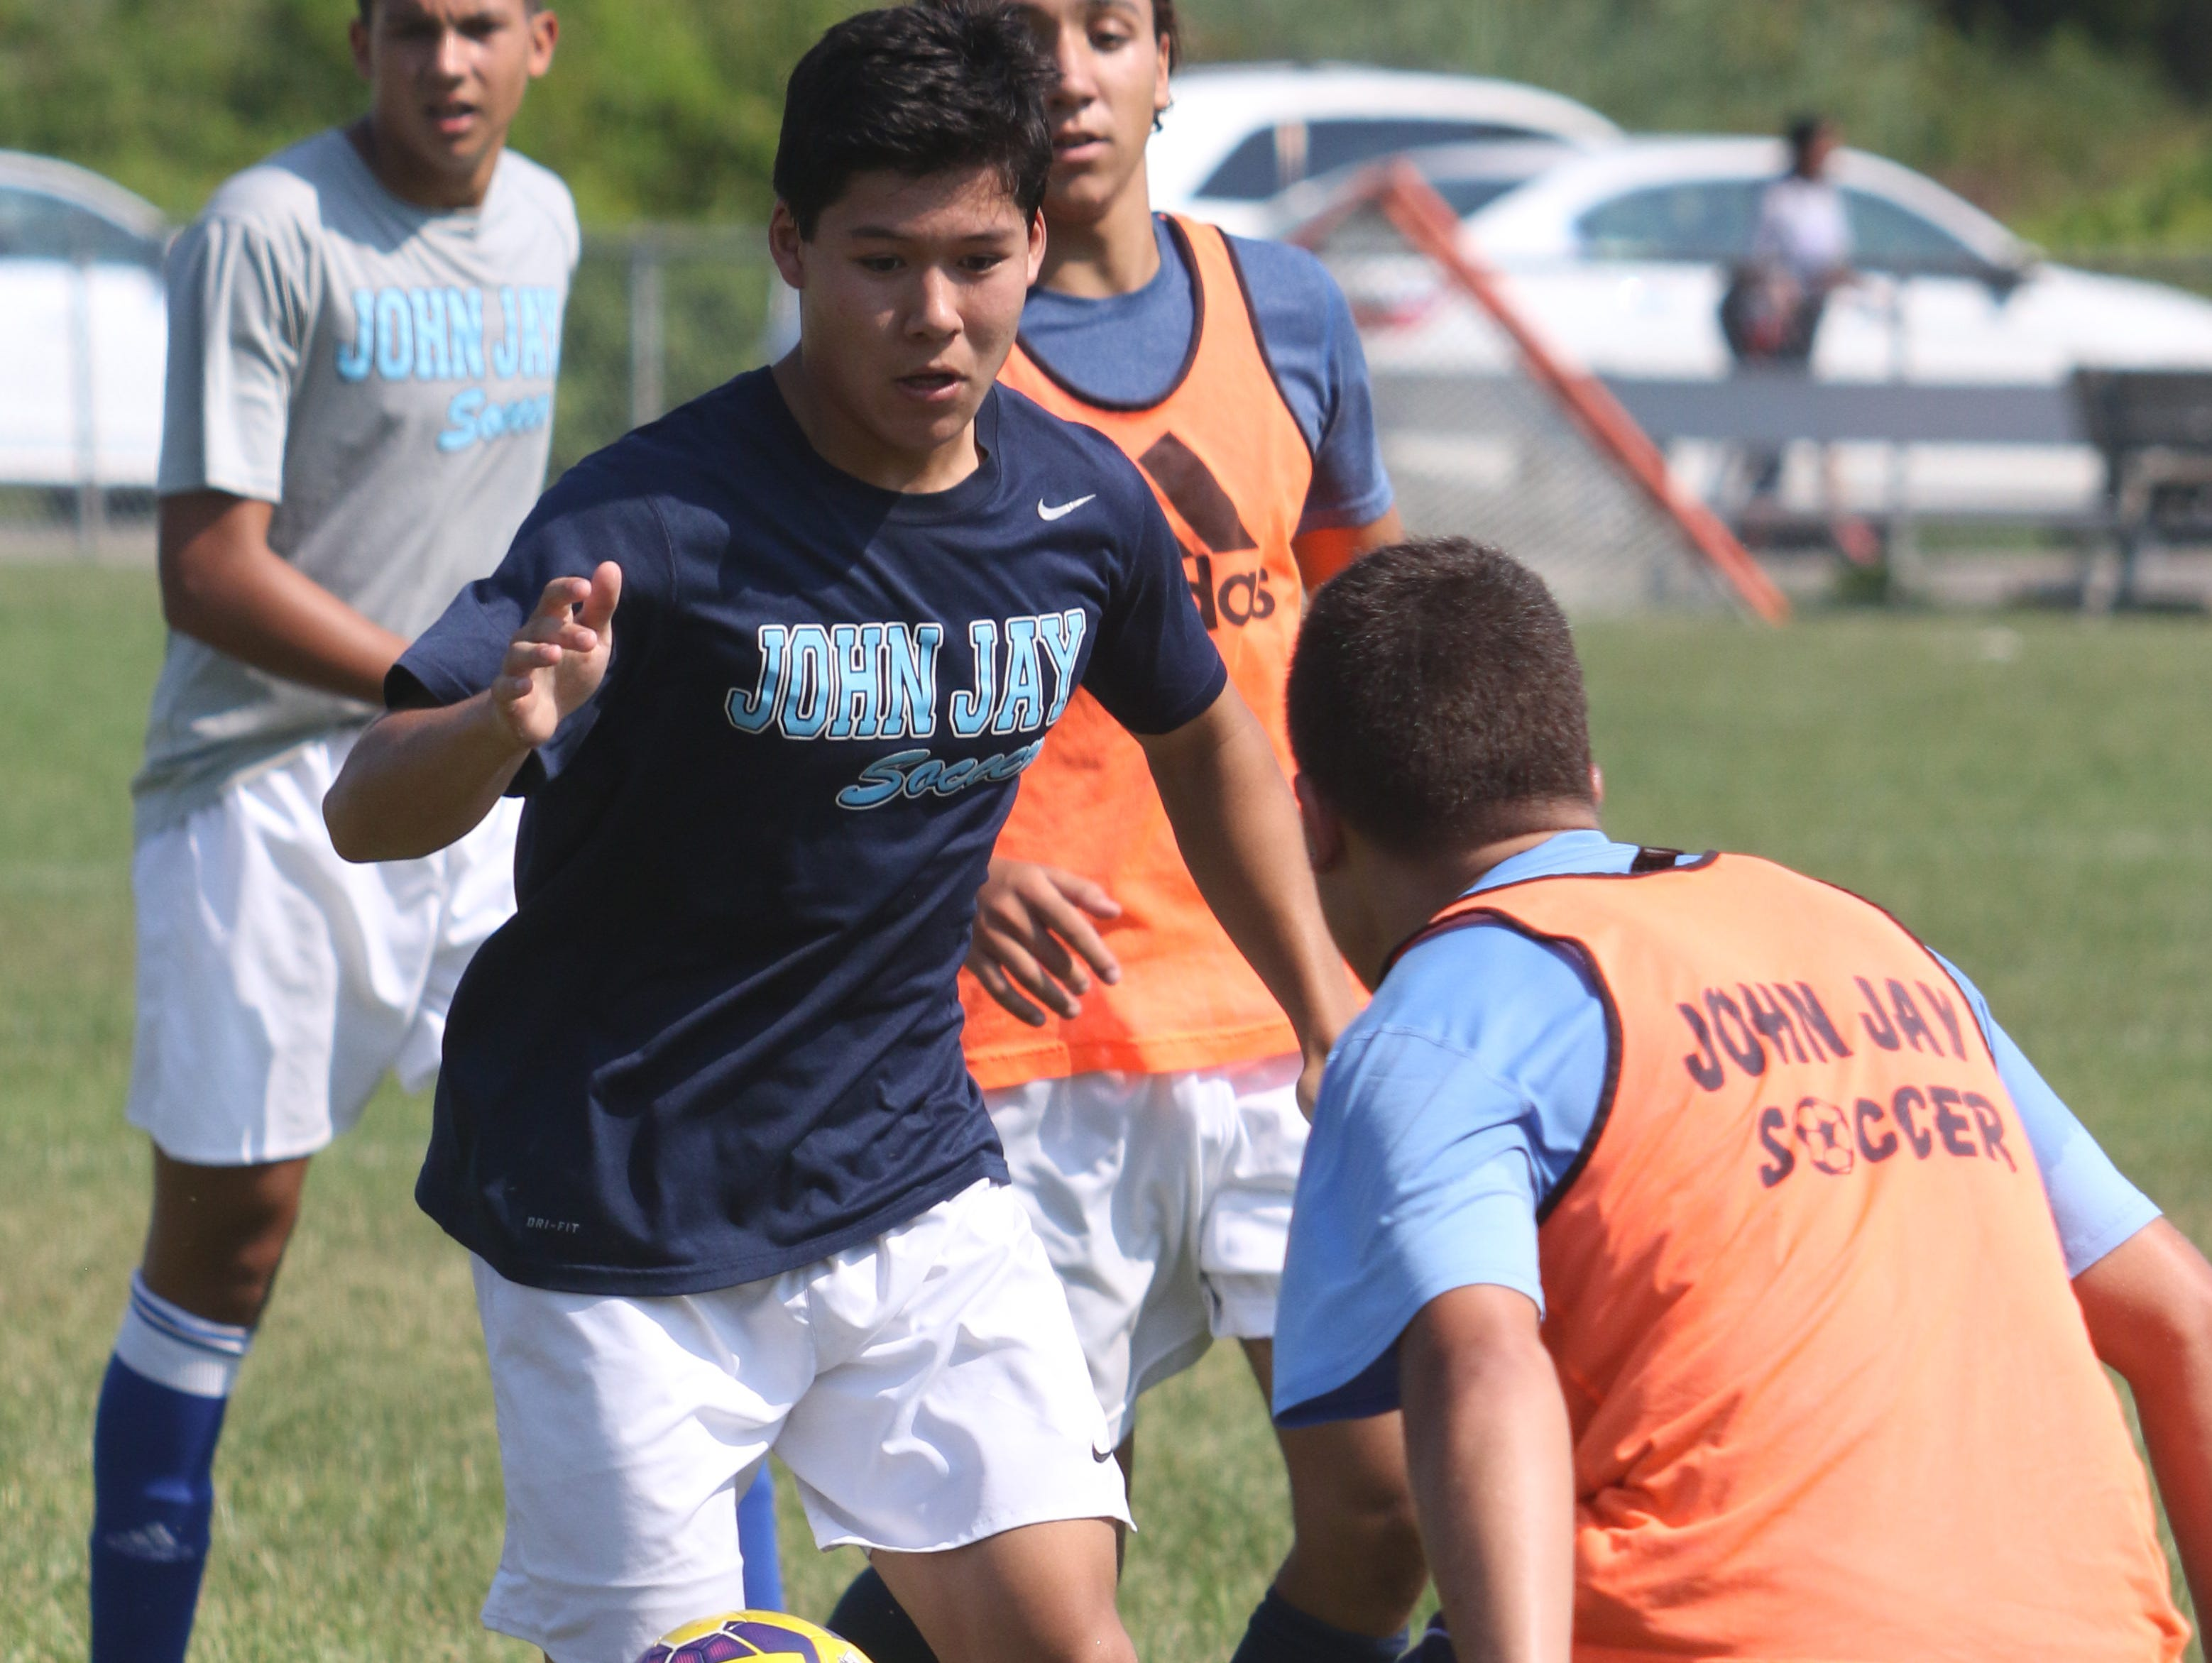 John Jay High School's Nick Dillmann dribbles around a teammate during practice on Wednesday.